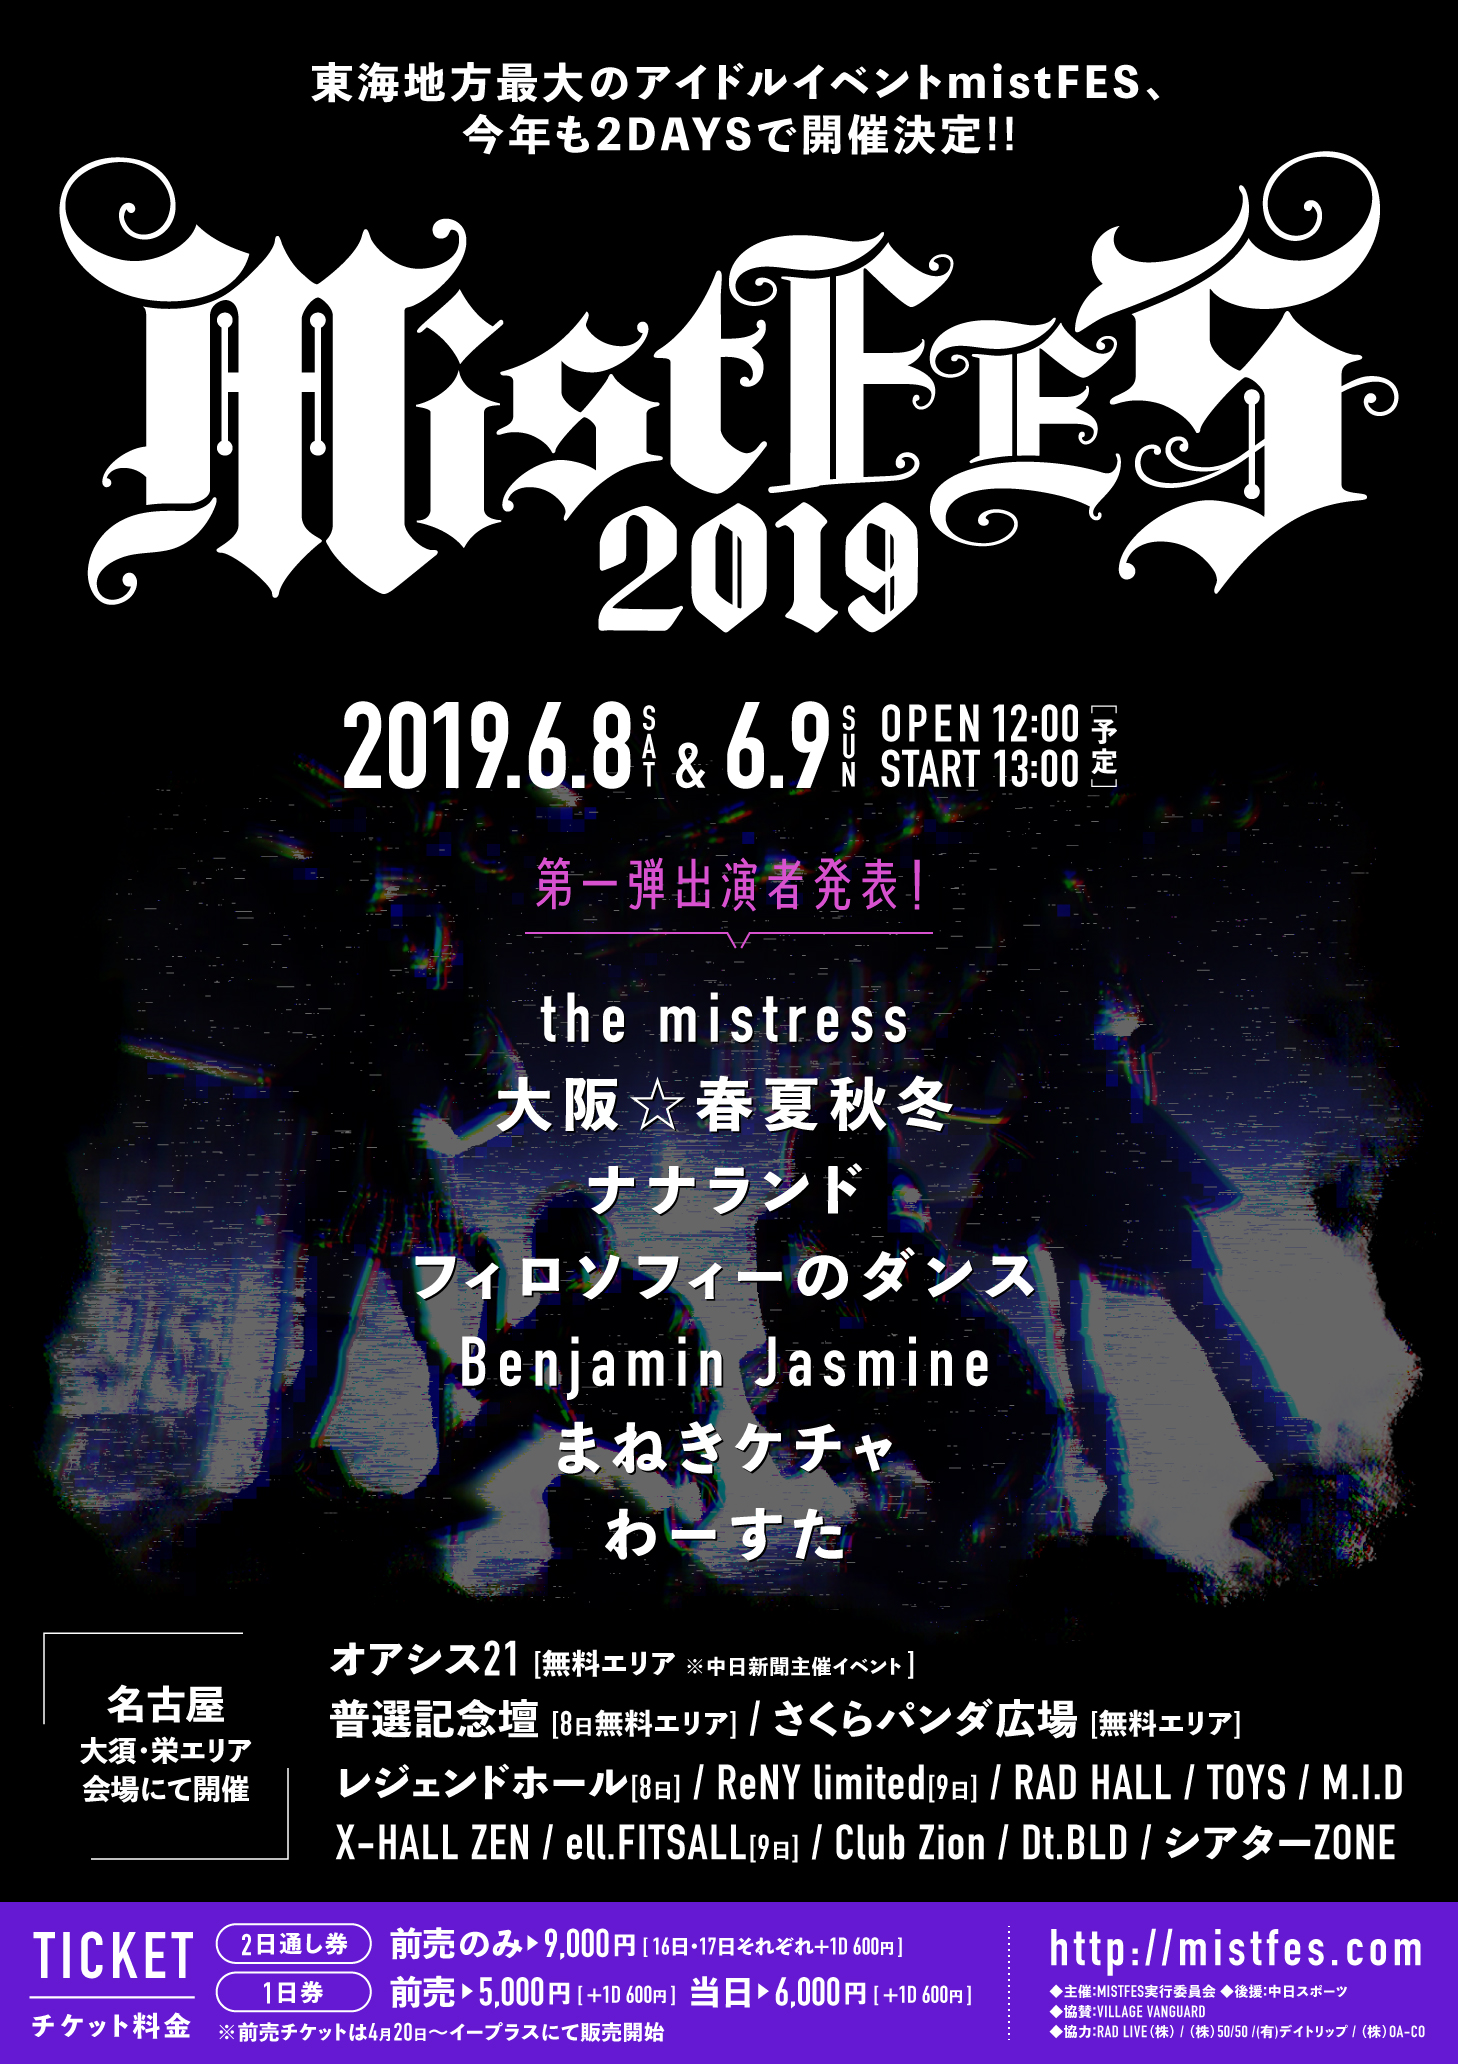 【mistFES2019 supported by 中日スポーツ】